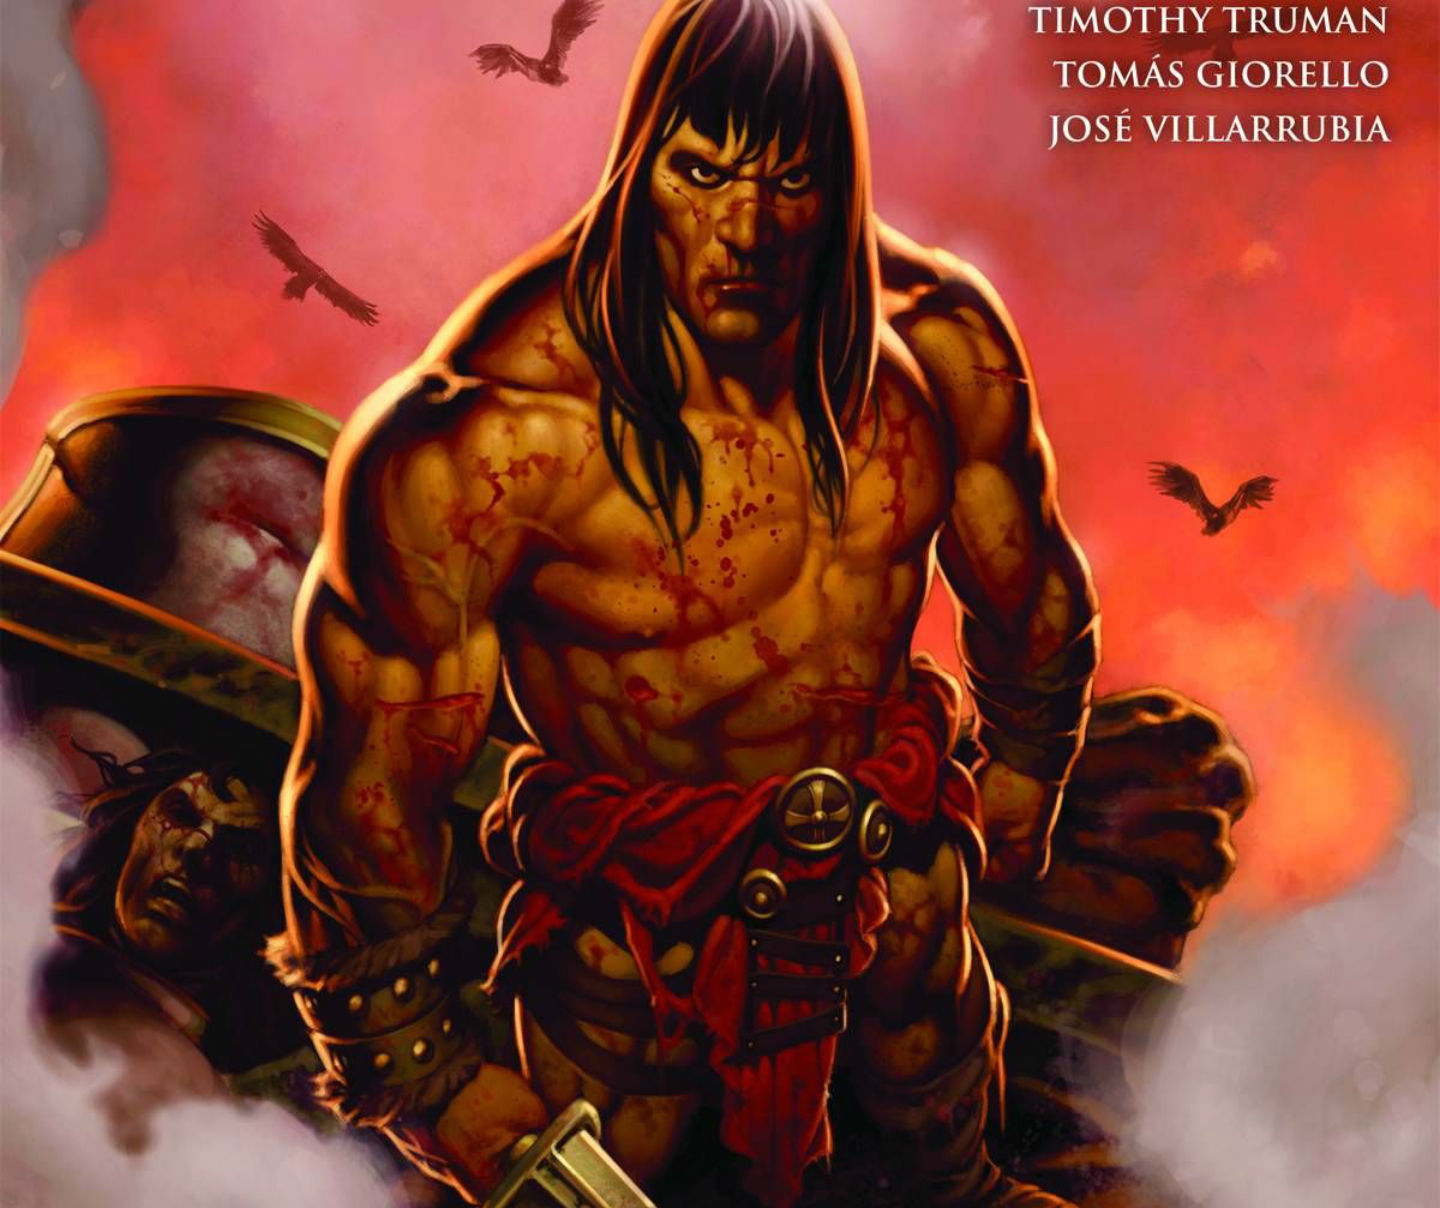 CONAN THE BARBARIAN fs wallpaper | 1440x1208 | 140172 ...